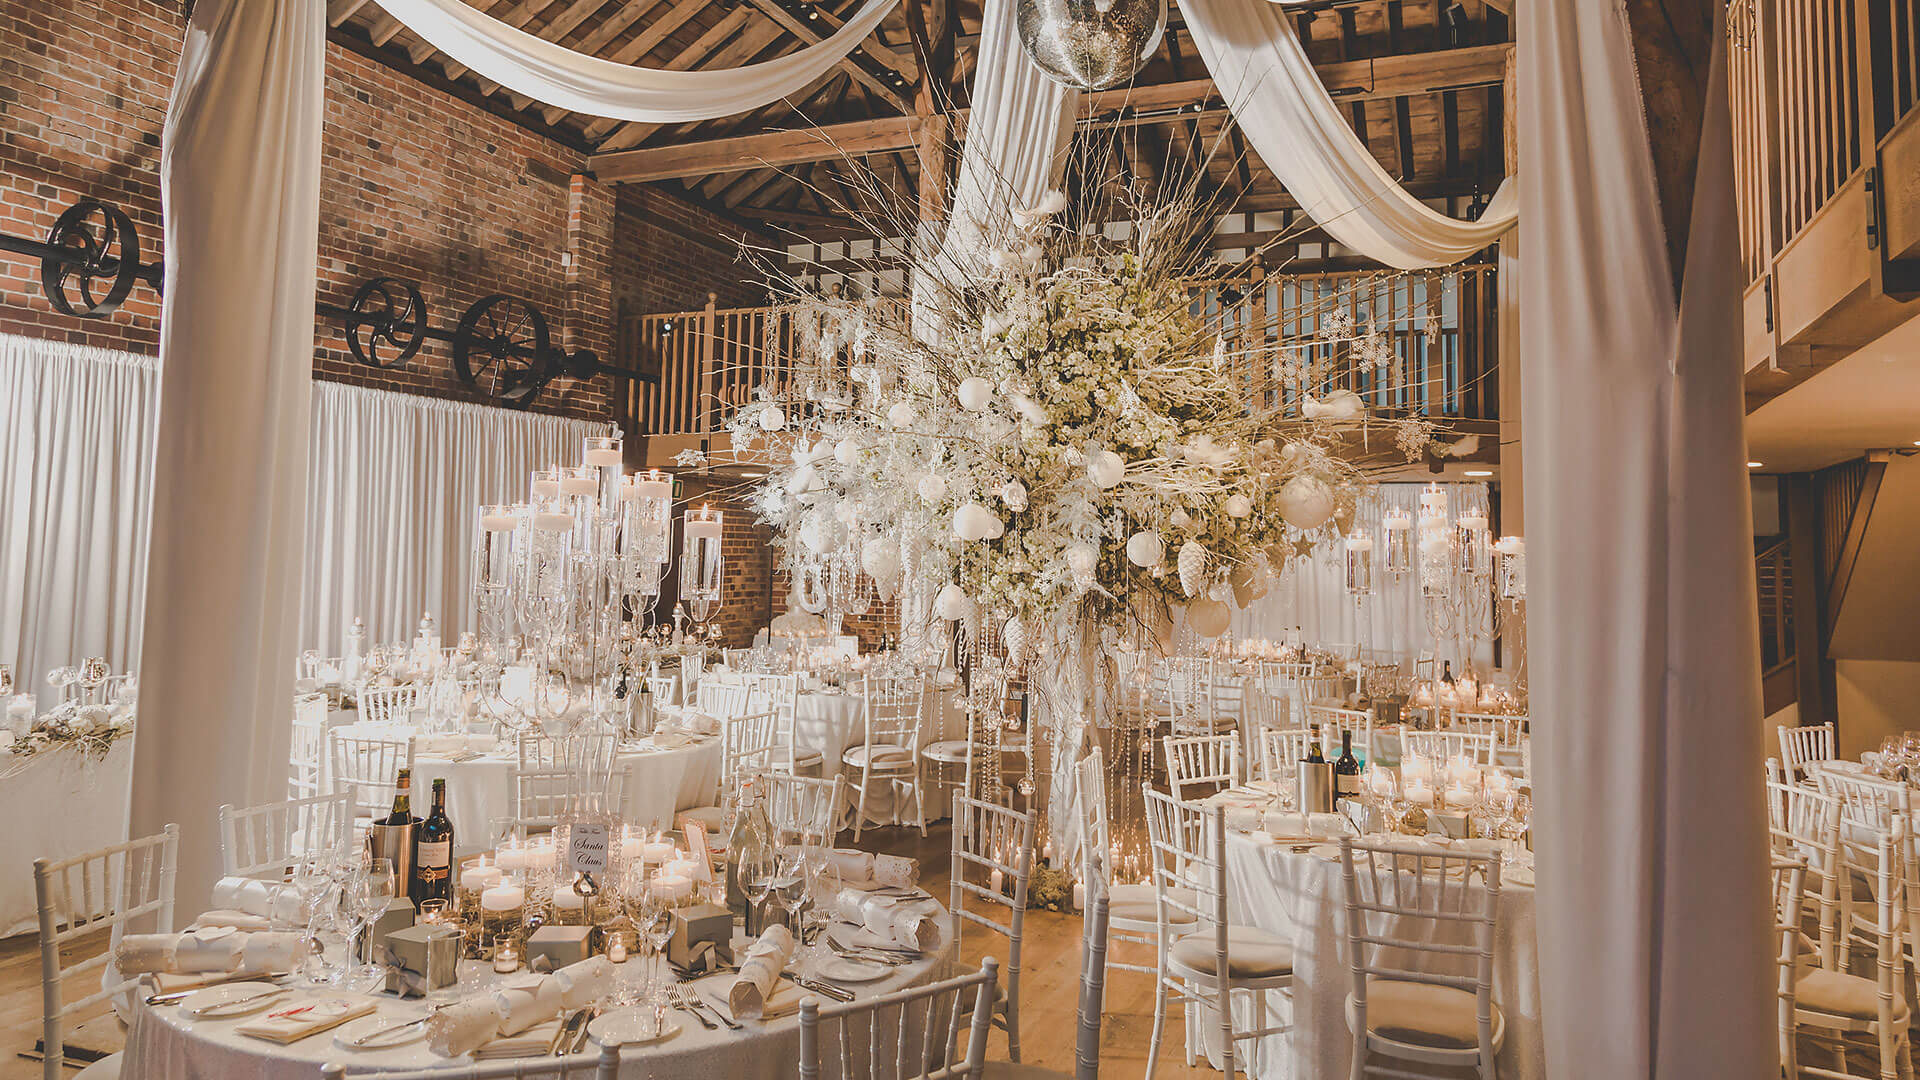 Gaynes Park barn wedding venue is decorated beautifully for a winter wedding with white wedding theme